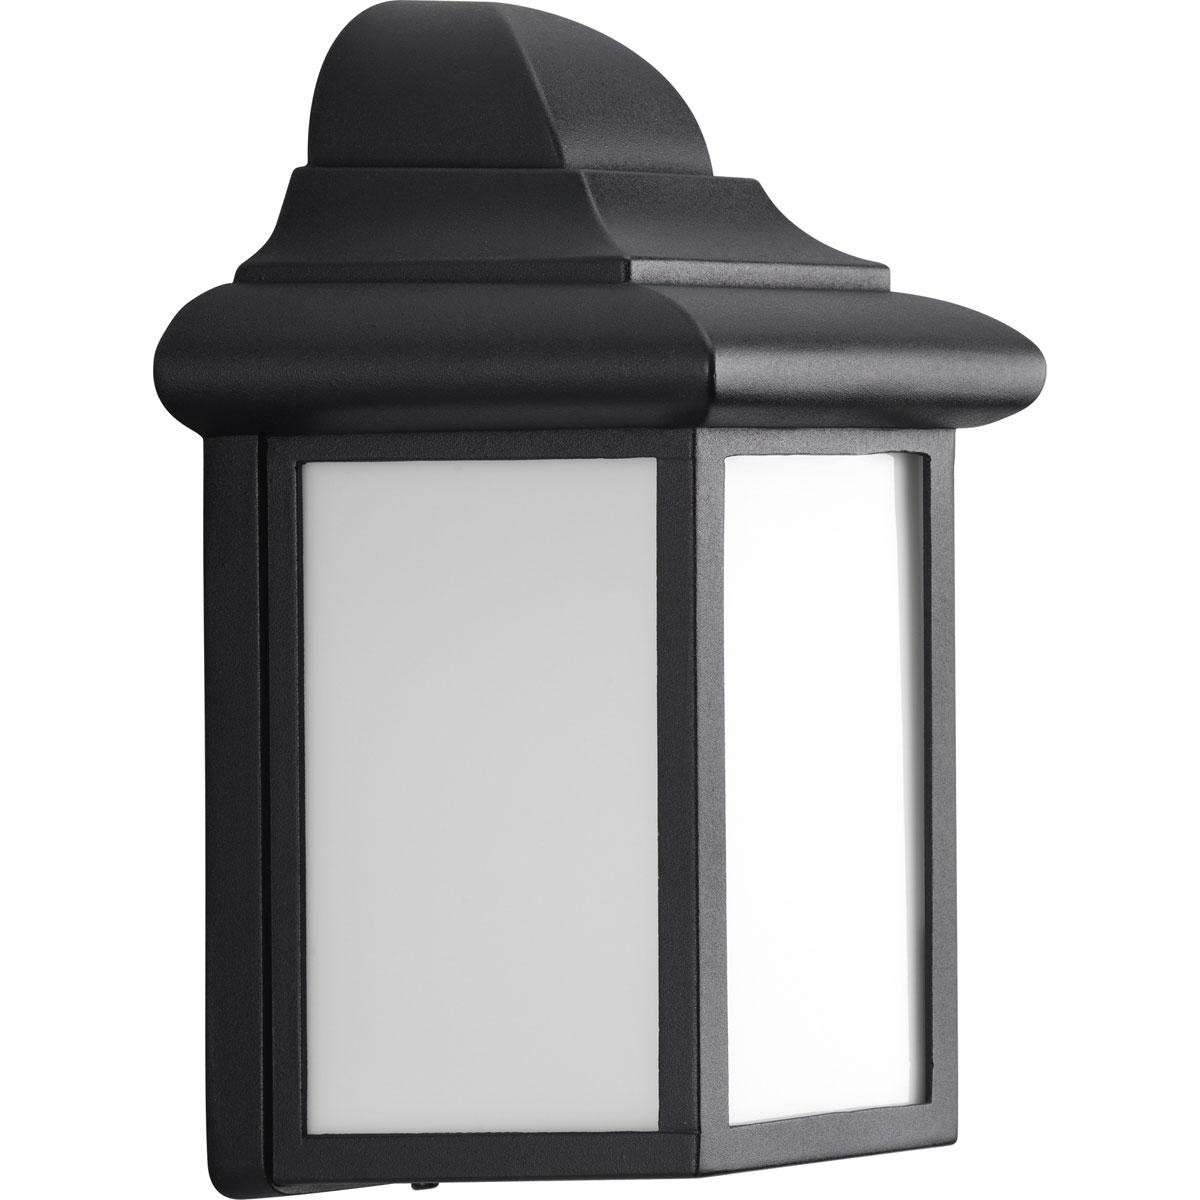 Progress P5821-31 One-light wall lantern in Black finish with matte white acrylic diffuser glass.